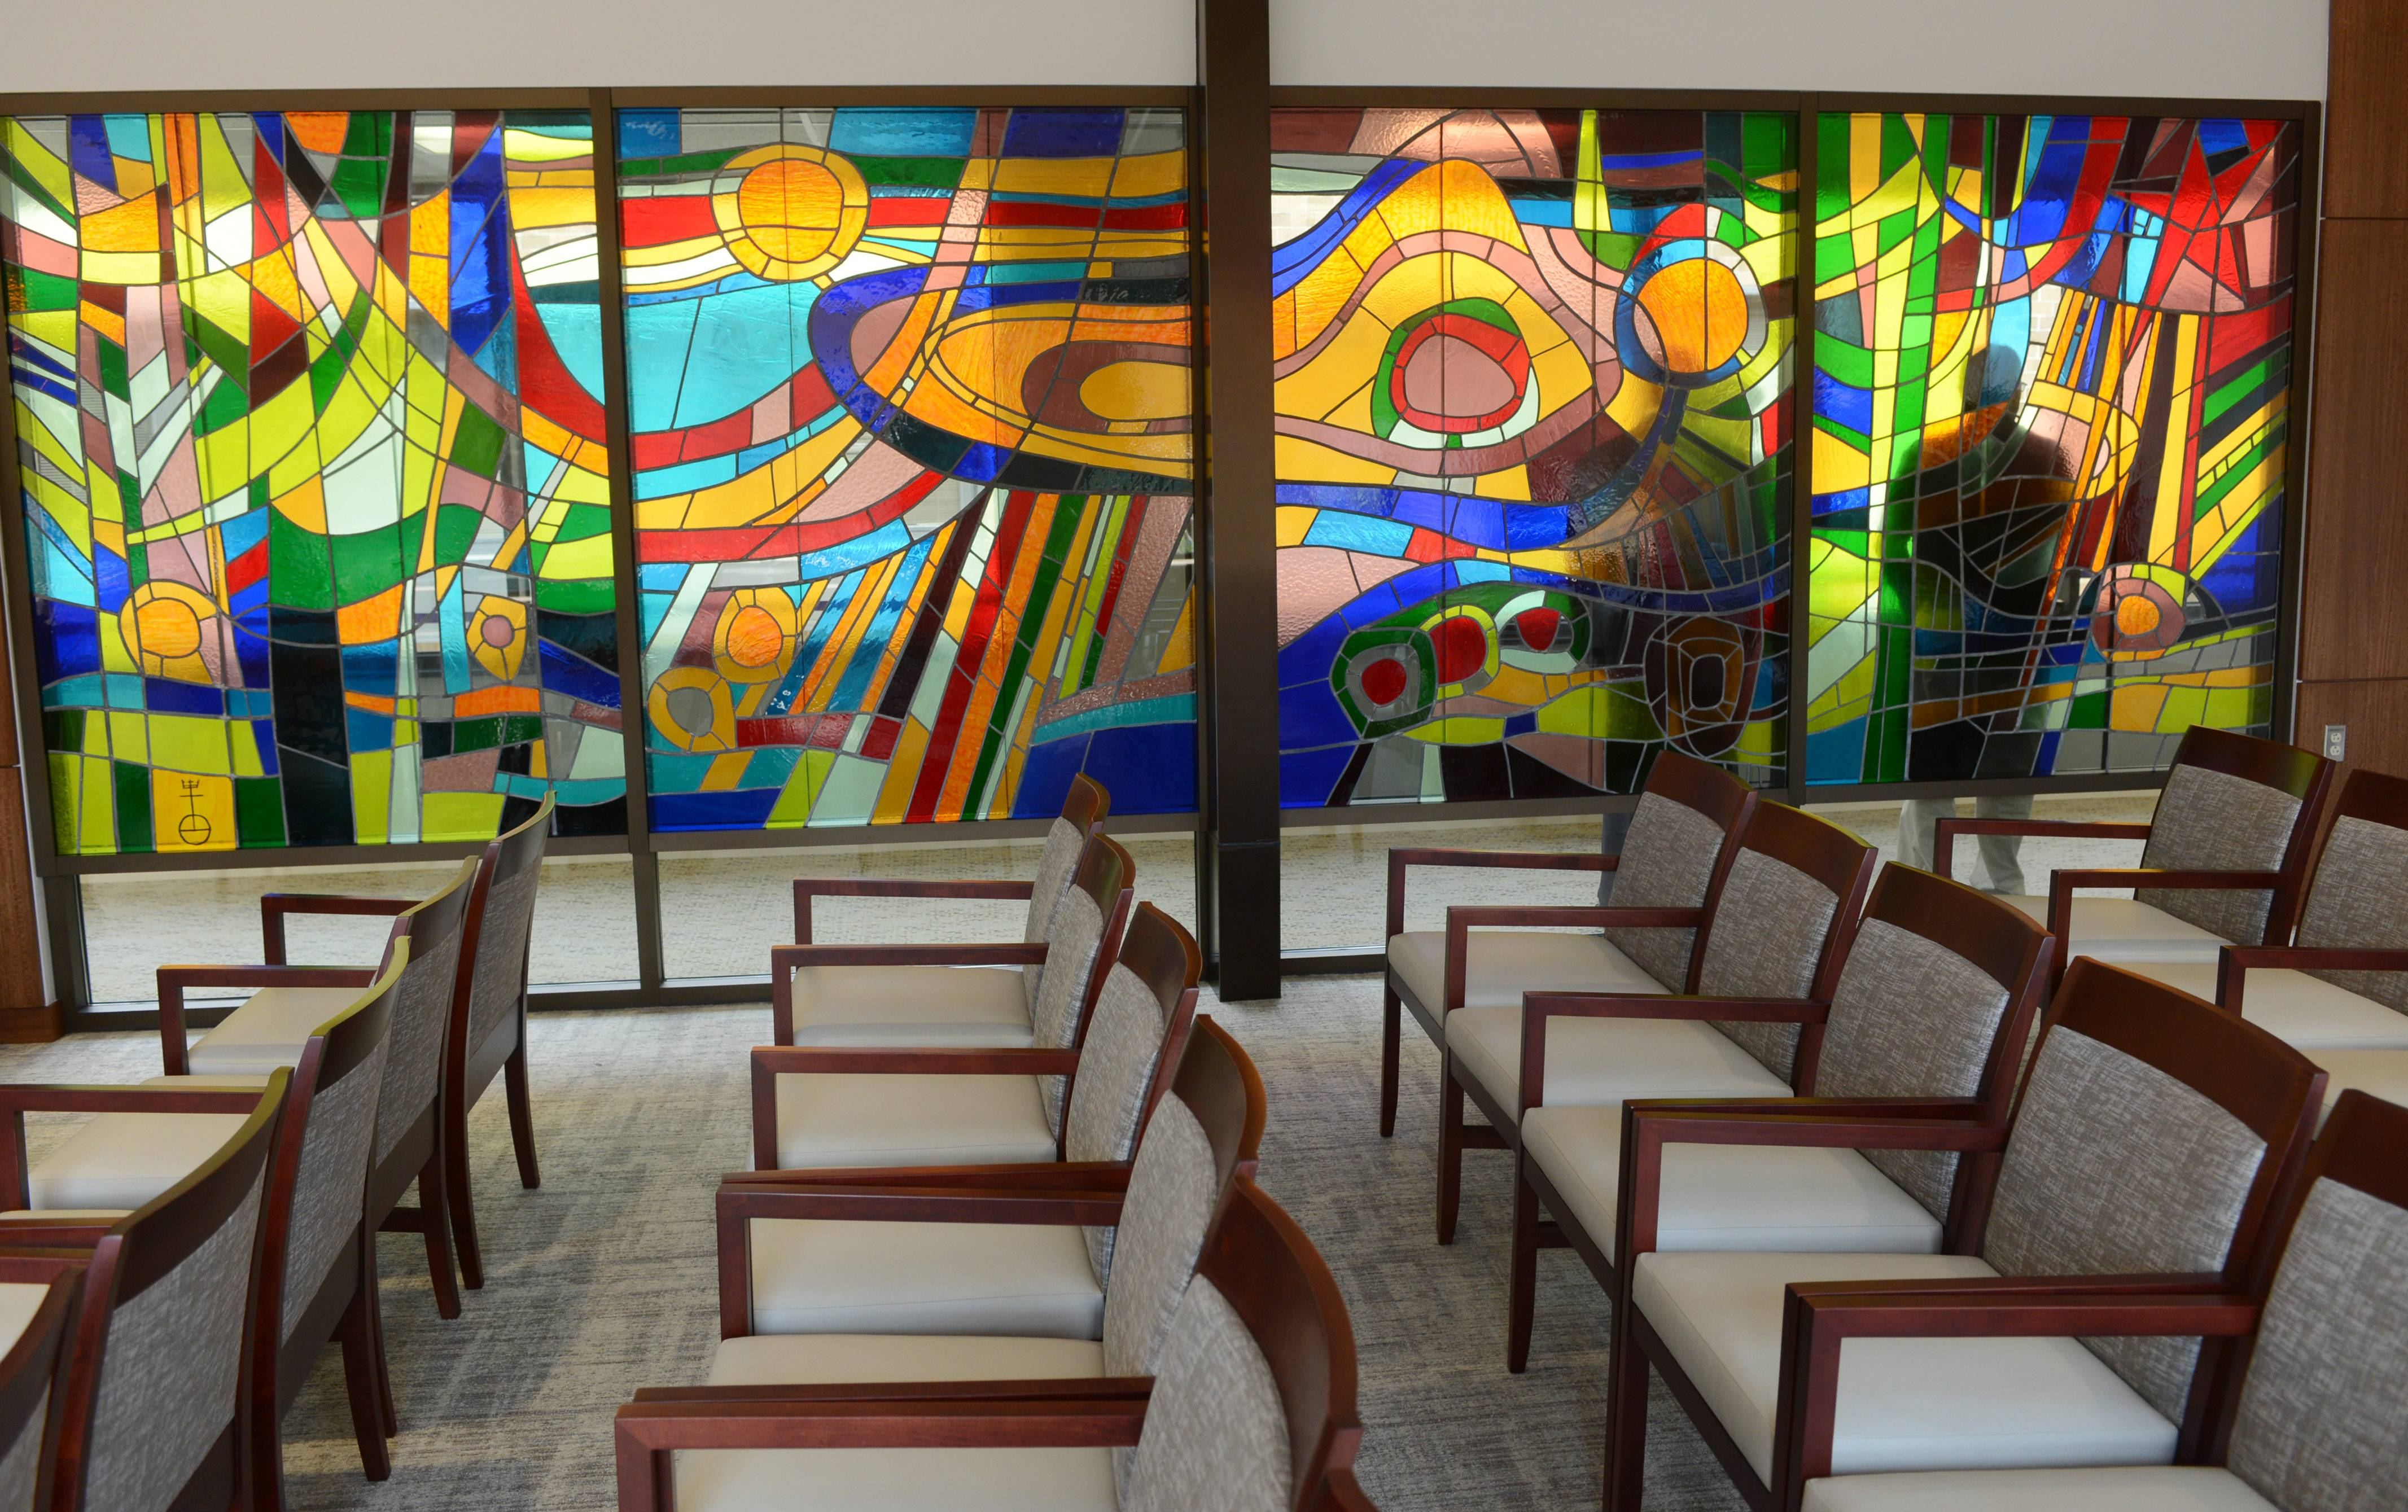 Stained glass windows adorn the new chapel at Advocate Good Shepherd Hospital near Barrington. The new chapel, built as part of a $247 million hospital modernization project, will be dedicated today.